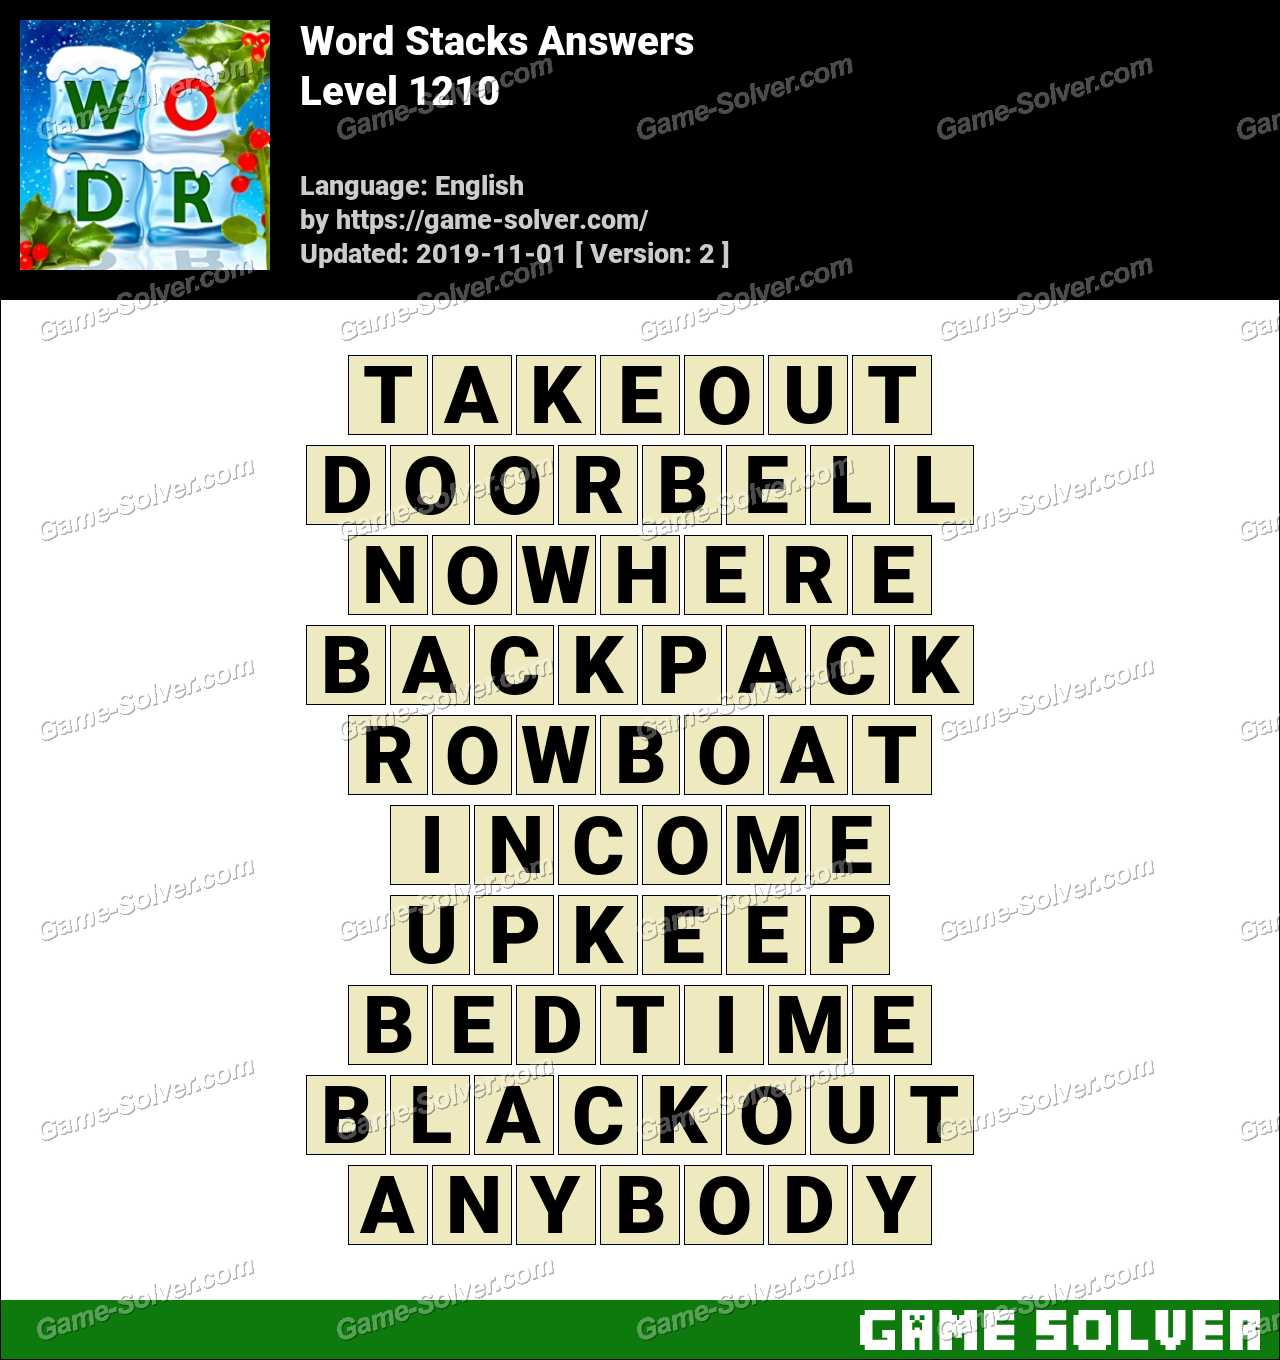 Word Stacks Level 1210 Answers